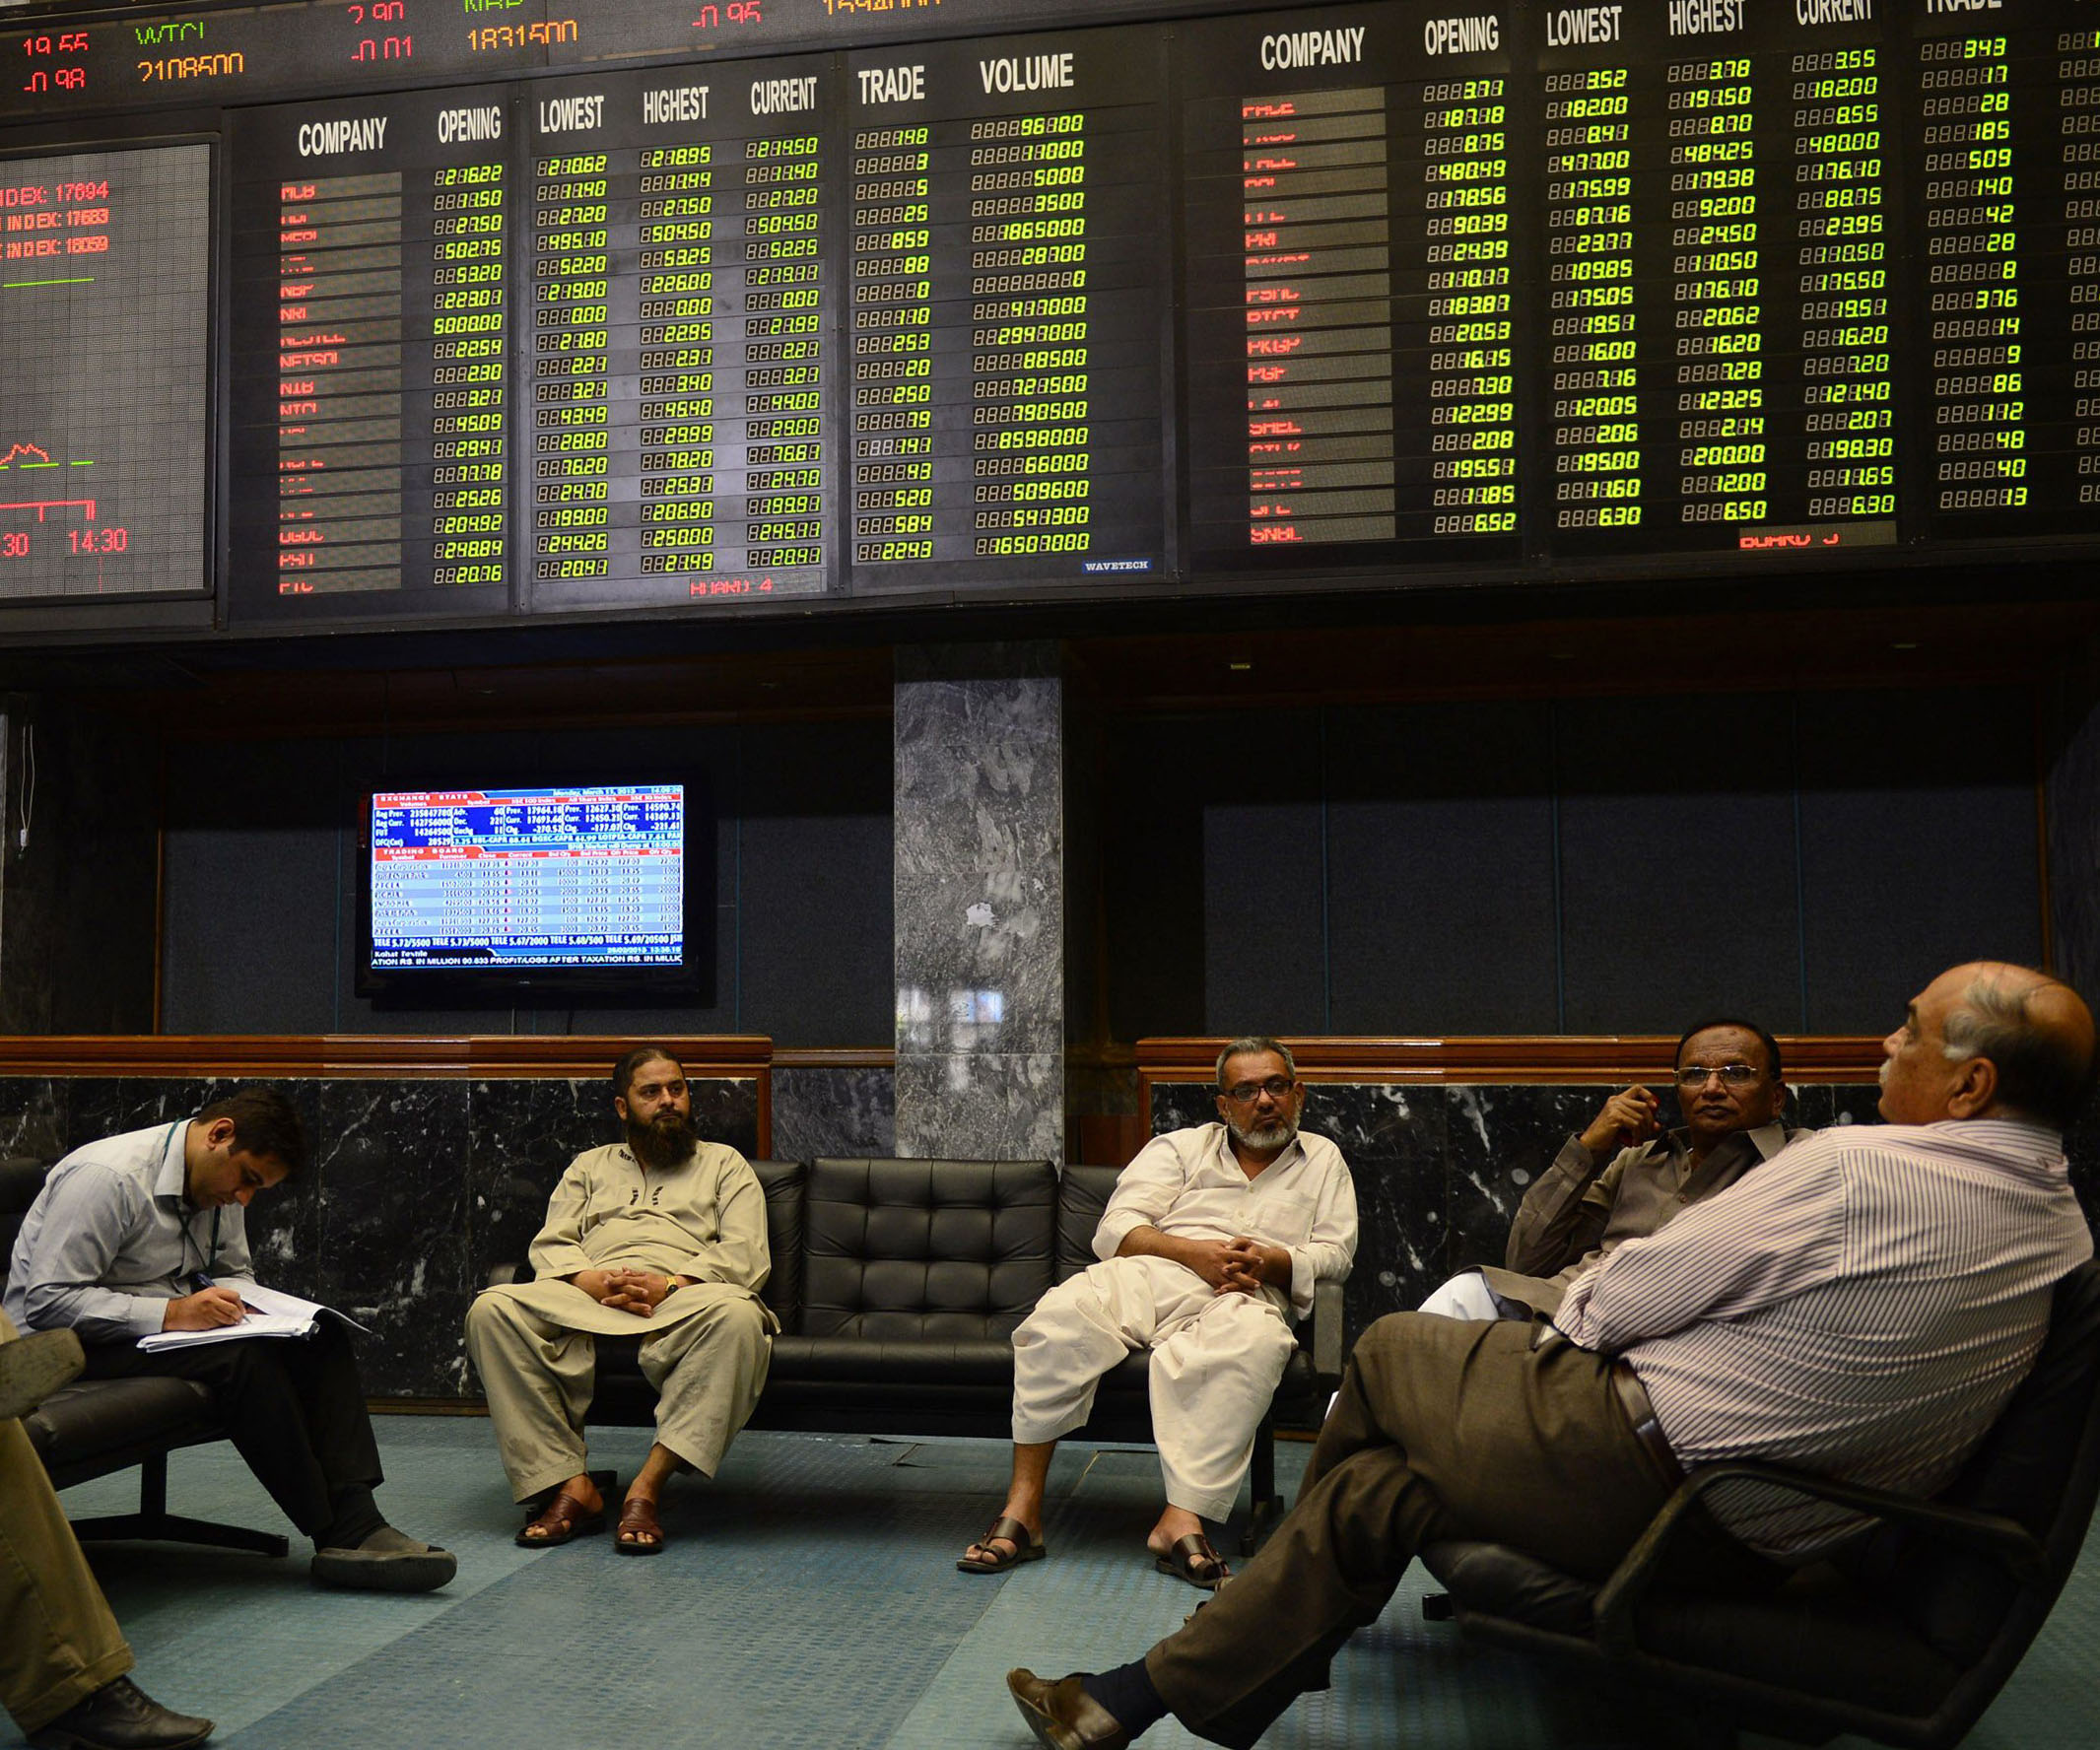 stock-market-kse-100-index-photo-afp-2-2-2-3-2-4-2-2-3-4-2-3-2